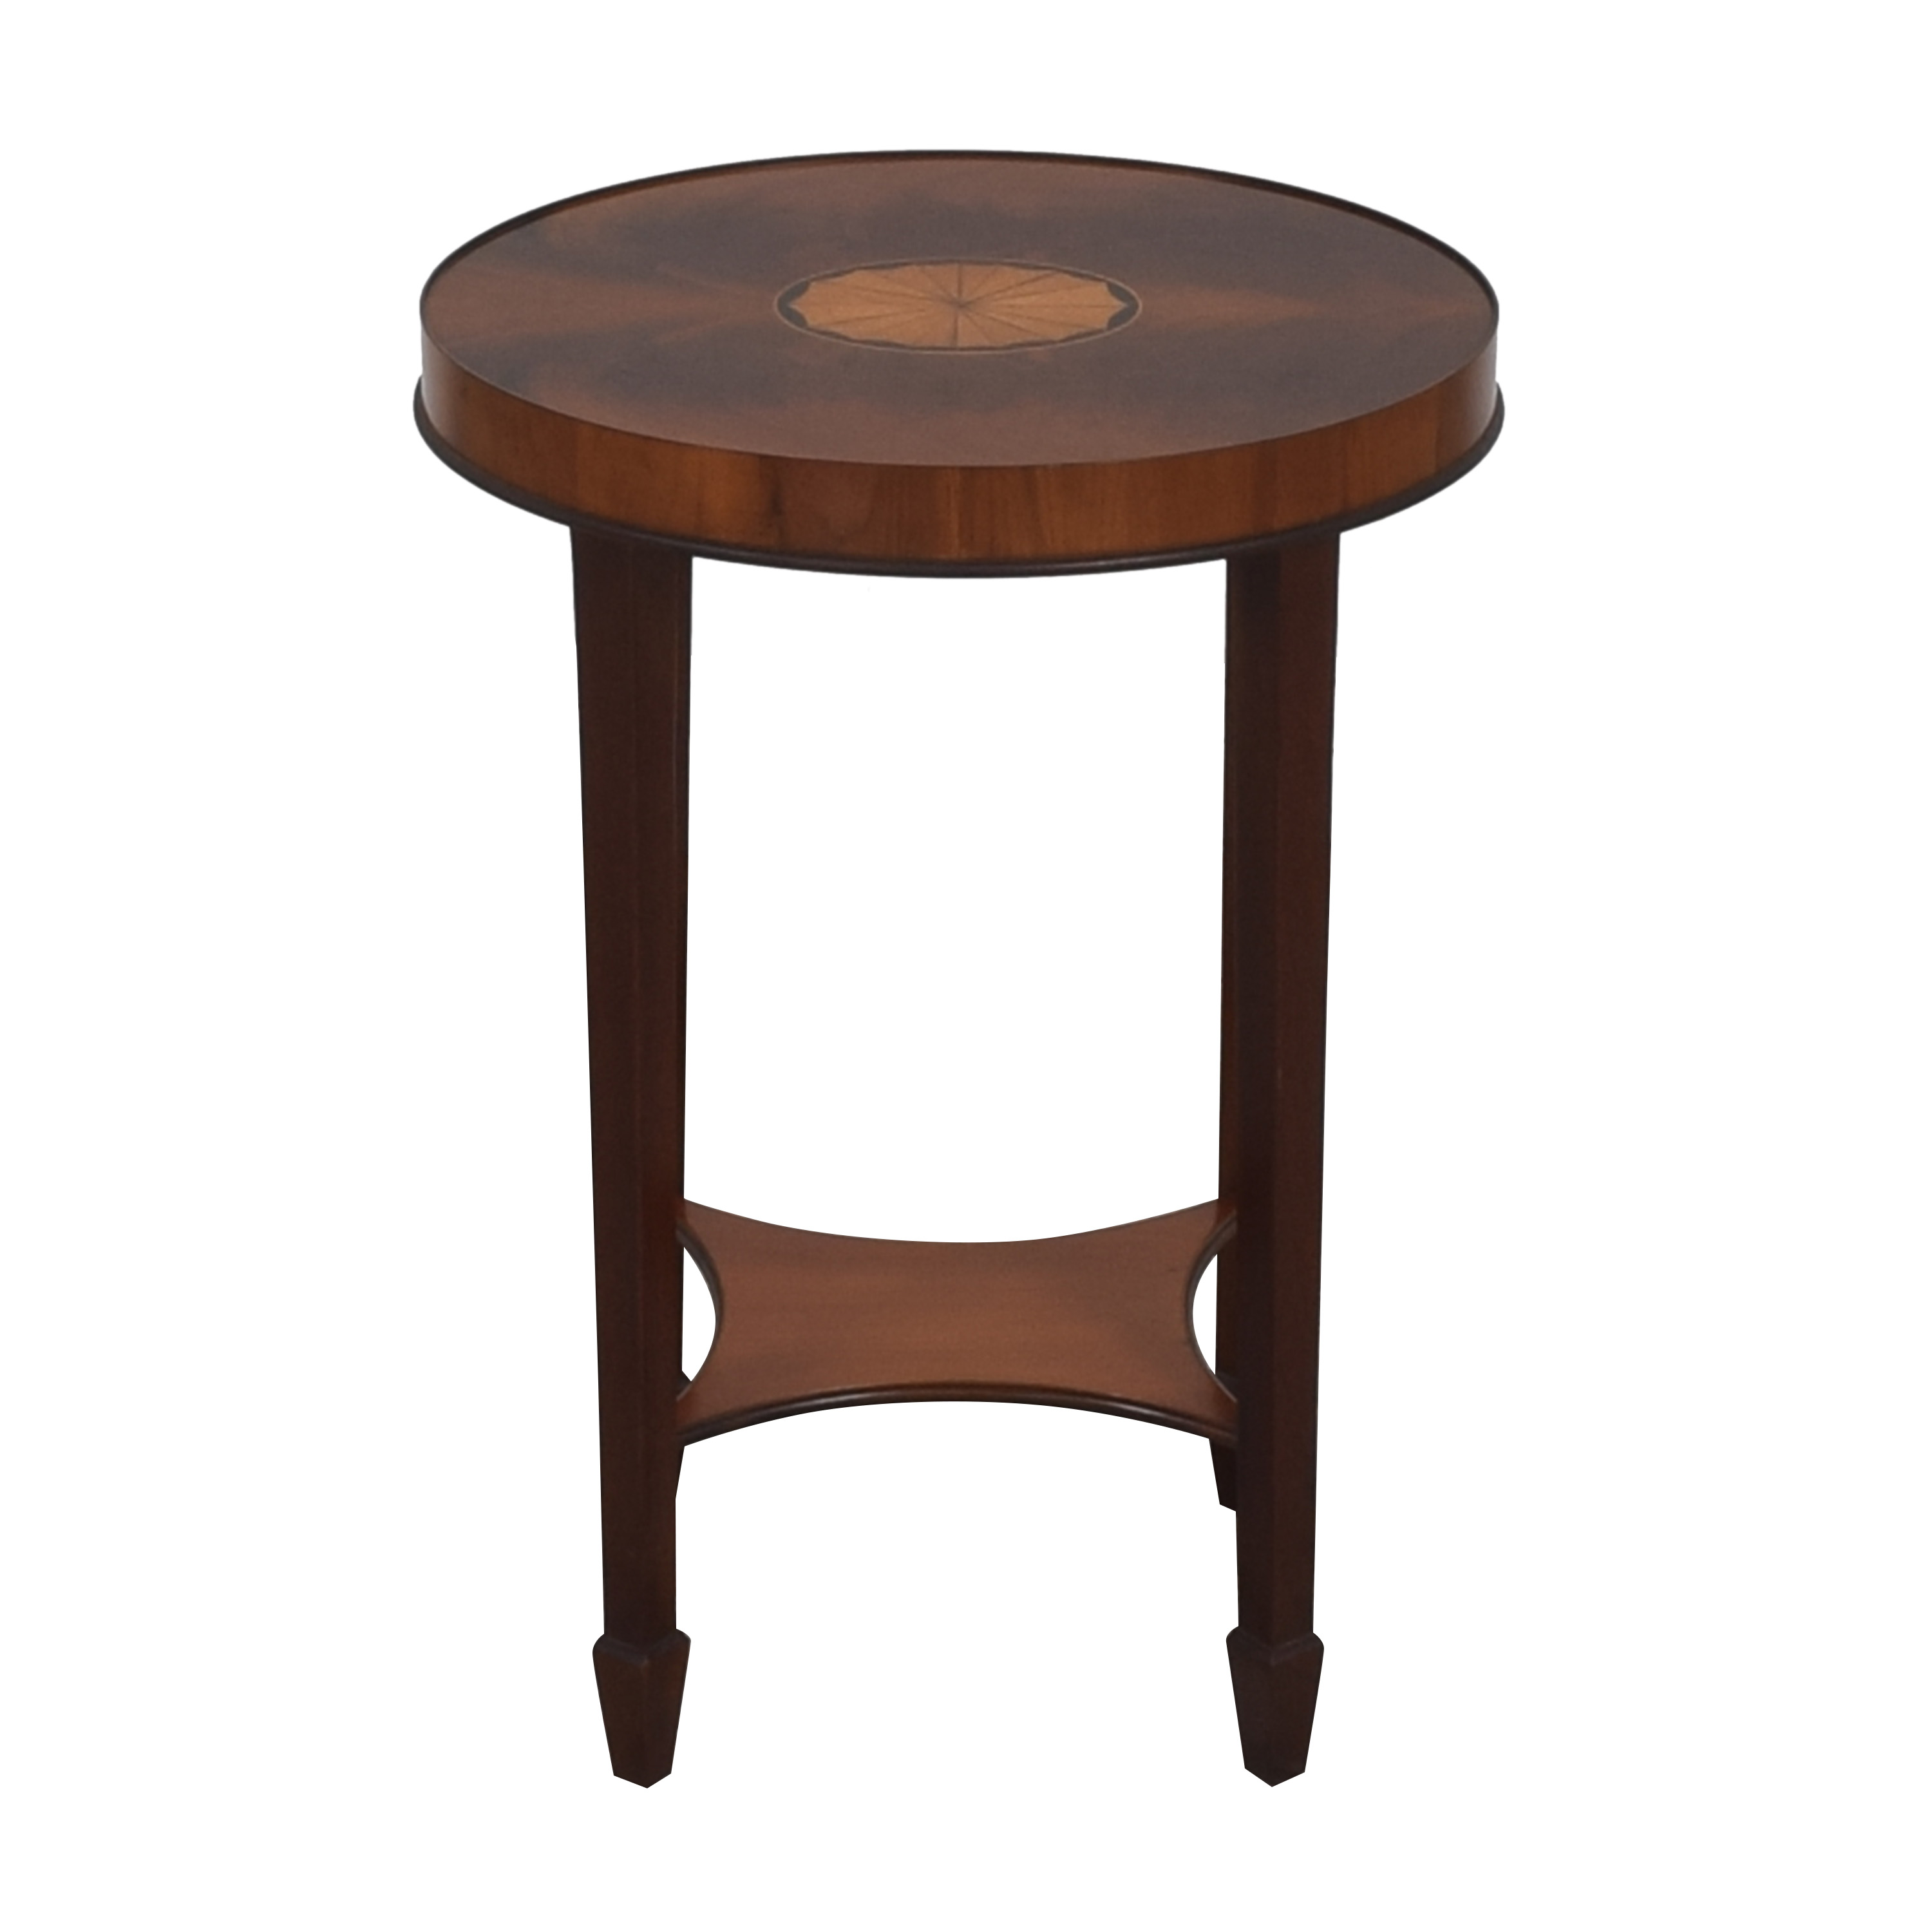 Hekman Furniture Hekman Copley Place Accent Table price